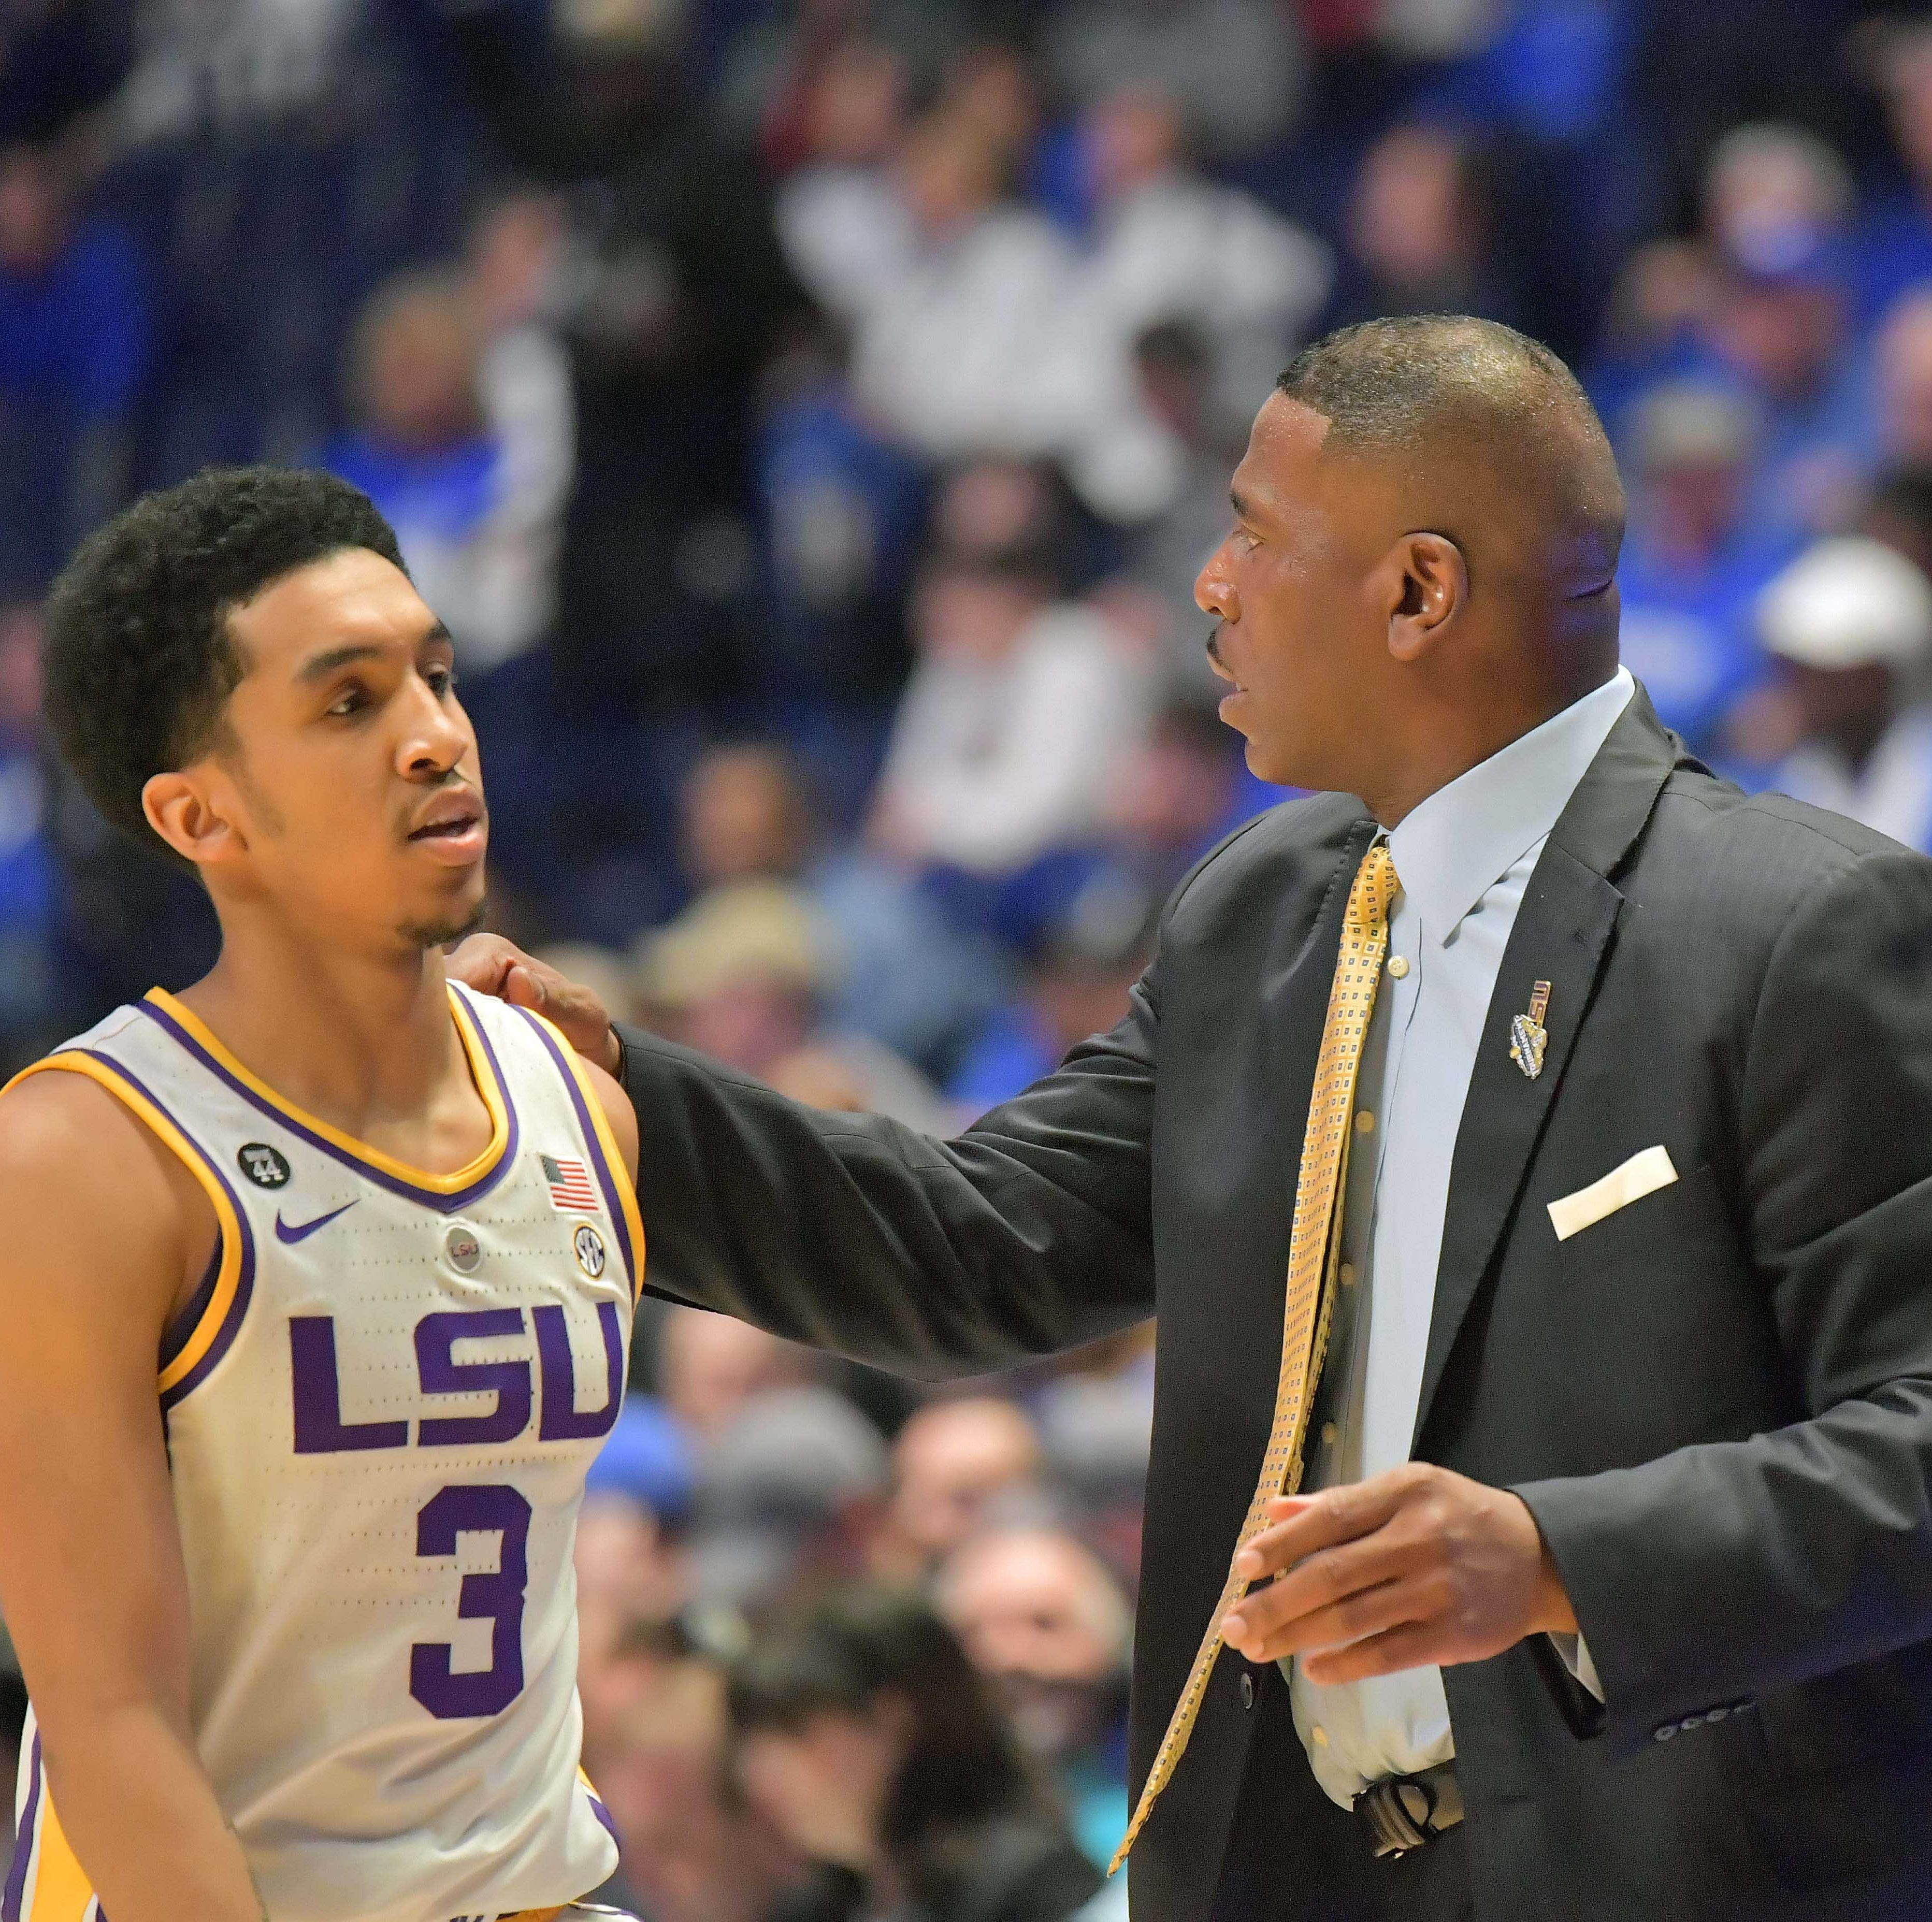 Mar 15, 2019; Nashville, TN, USA; LSU Tigers guard Tremont Waters (3) with LSU Tigers interim head coach Tony Benford during the first half of game seven in the SEC conference tournament at Bridgestone Arena. Mandatory Credit: Jim Brown-USA TODAY Sports